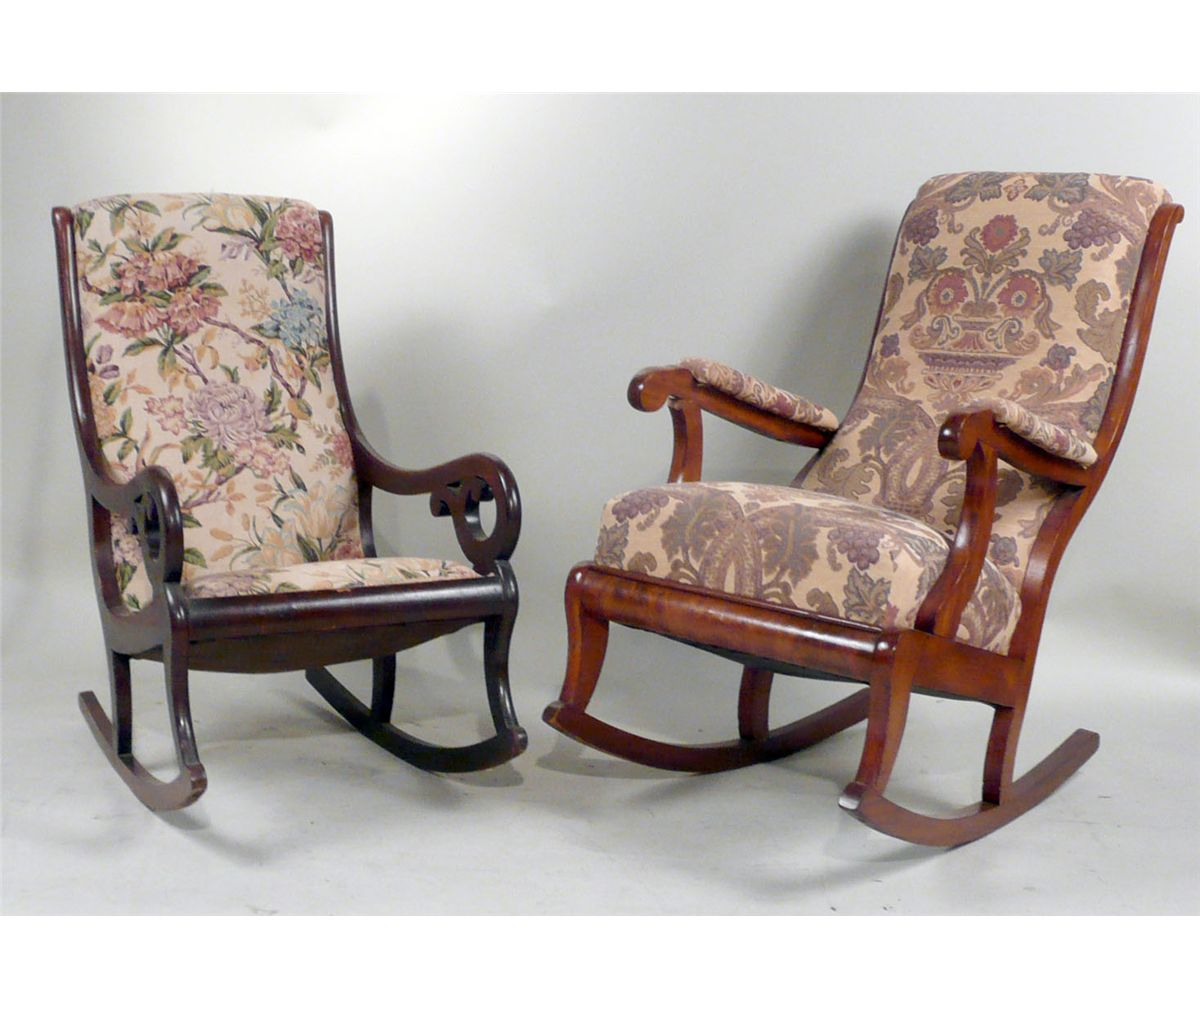 Victorian rocking chair - Two Victorian Mahogany Rocking Chairs American Late 19th C N9enbh Loading Zoom